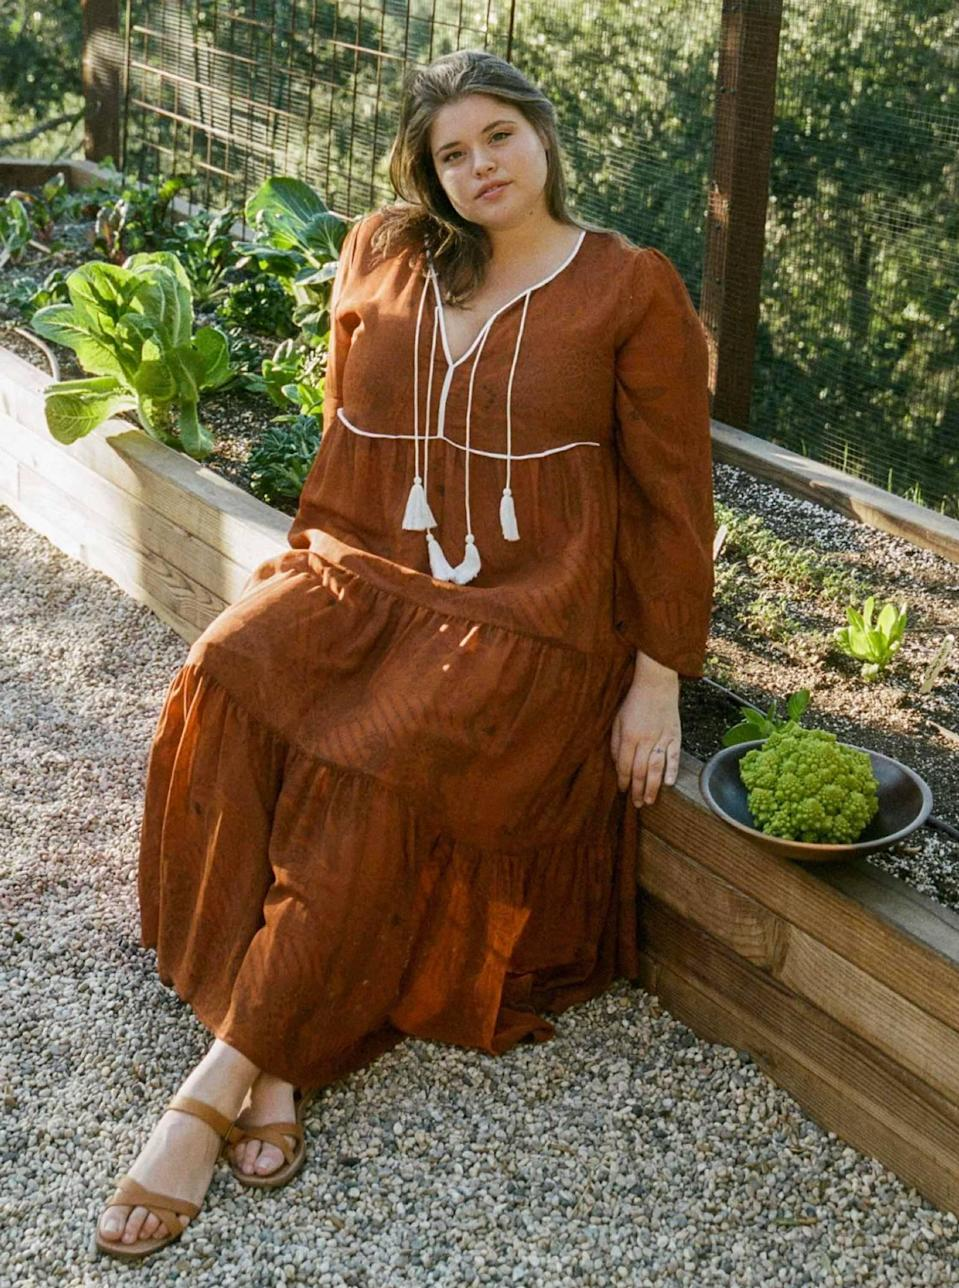 """$298, Christy Dawn. <a href=""""https://christydawn.com/collections/the-extended-sizing-collection/products/the-paloma-dress-extended-pumpkin-paisley"""" rel=""""nofollow noopener"""" target=""""_blank"""" data-ylk=""""slk:Get it now!"""" class=""""link rapid-noclick-resp"""">Get it now!</a>"""